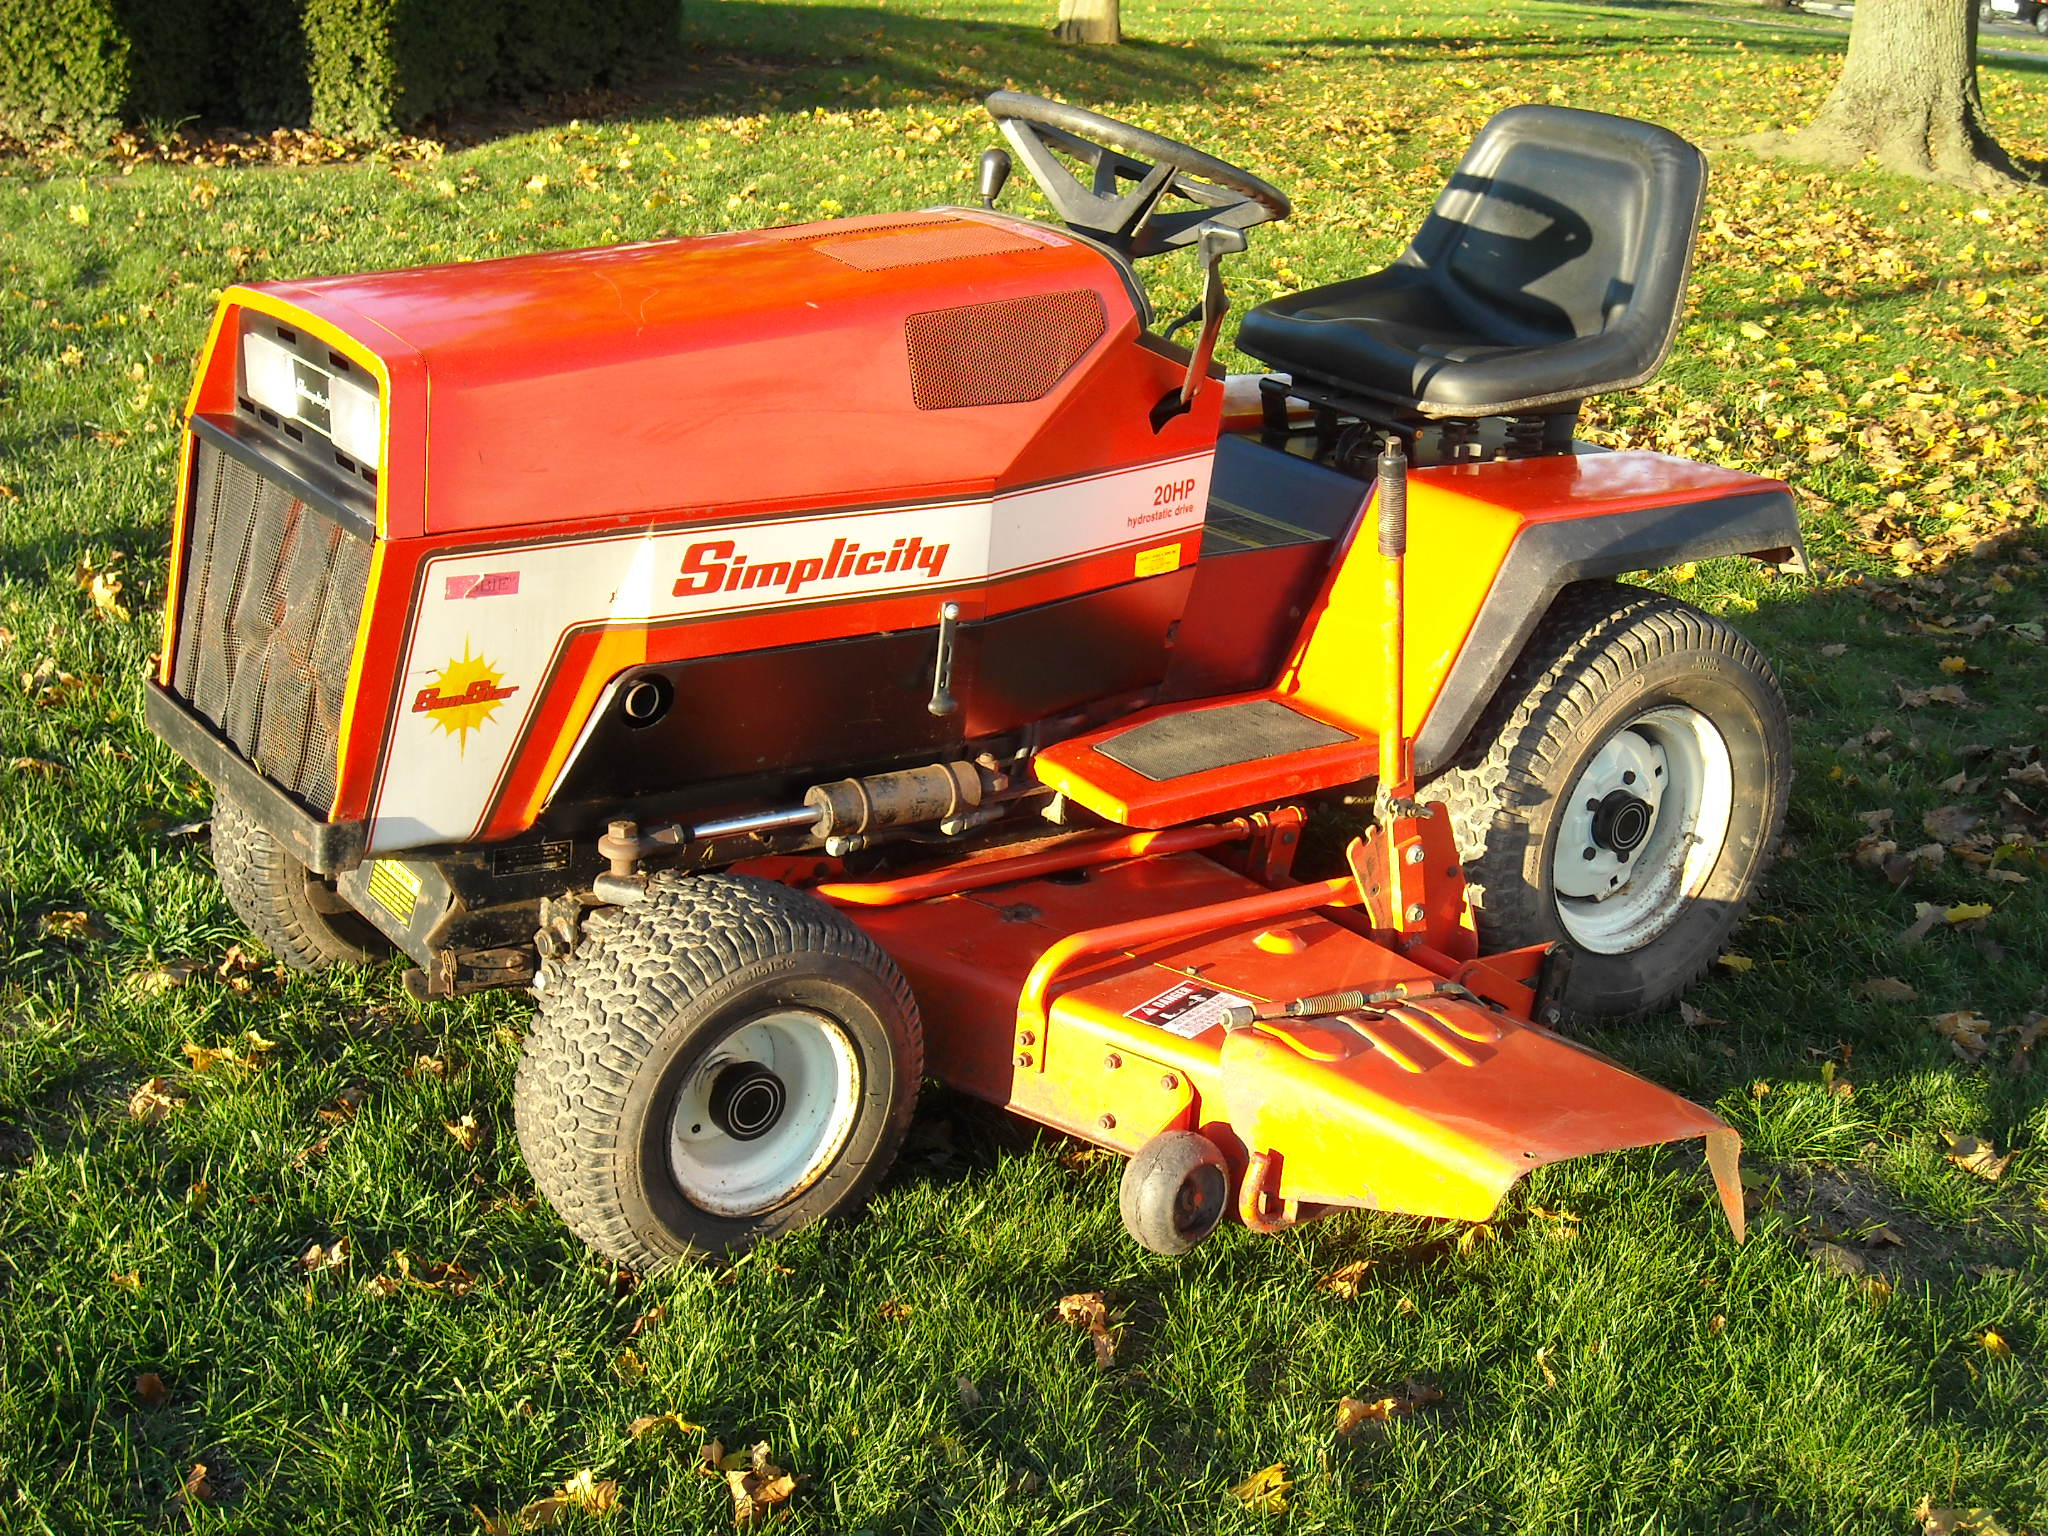 Simplicity sunstar 16 lawn tractor simplicity lawn tractors pics not linked are available upon request simplicity 16 simplicity sunstar 20hp hydro lawn mower fandeluxe Image collections